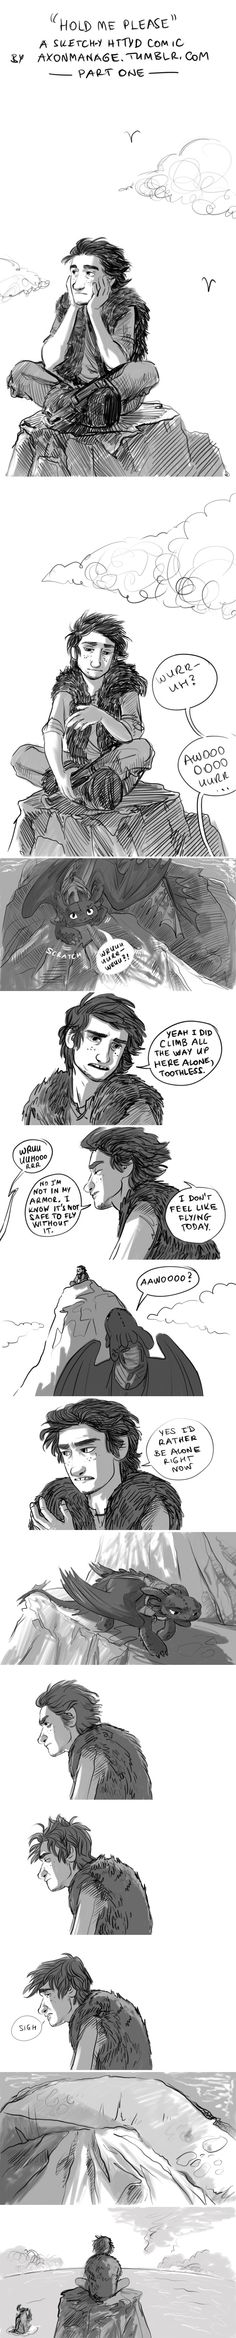 Hold Me Please - a sketch-y HTTYD comic, part one by axondrive on deviantART